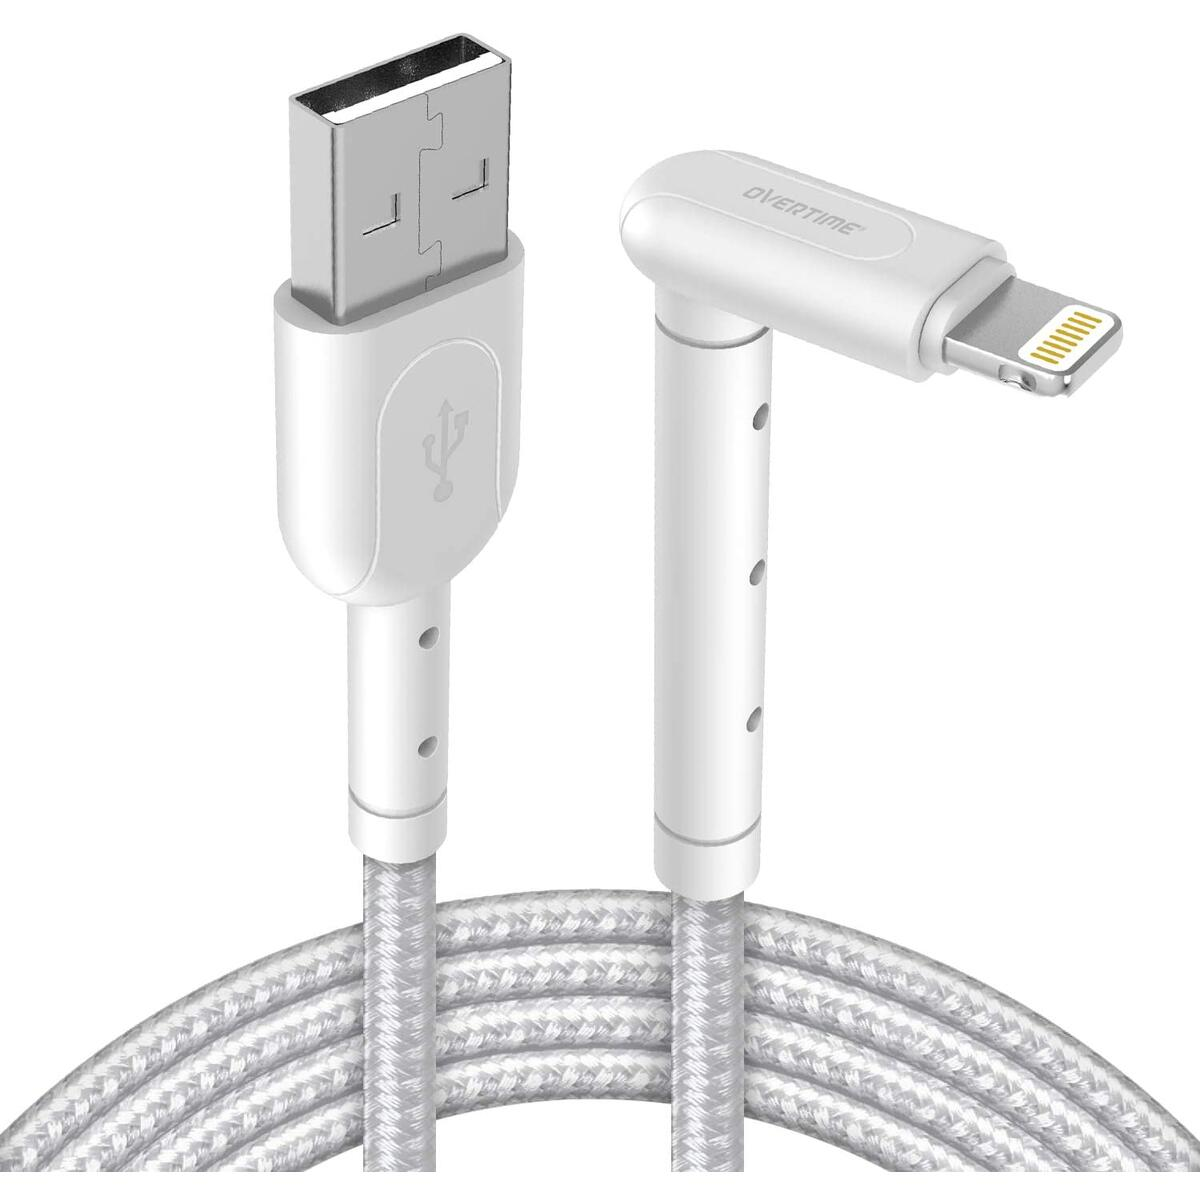 iPhone Charger w/ Built-In Stand, 6ft Apple MFi Certified Lightning Cable, Braided Nylon, 1 Pack, 6 feet - Gray